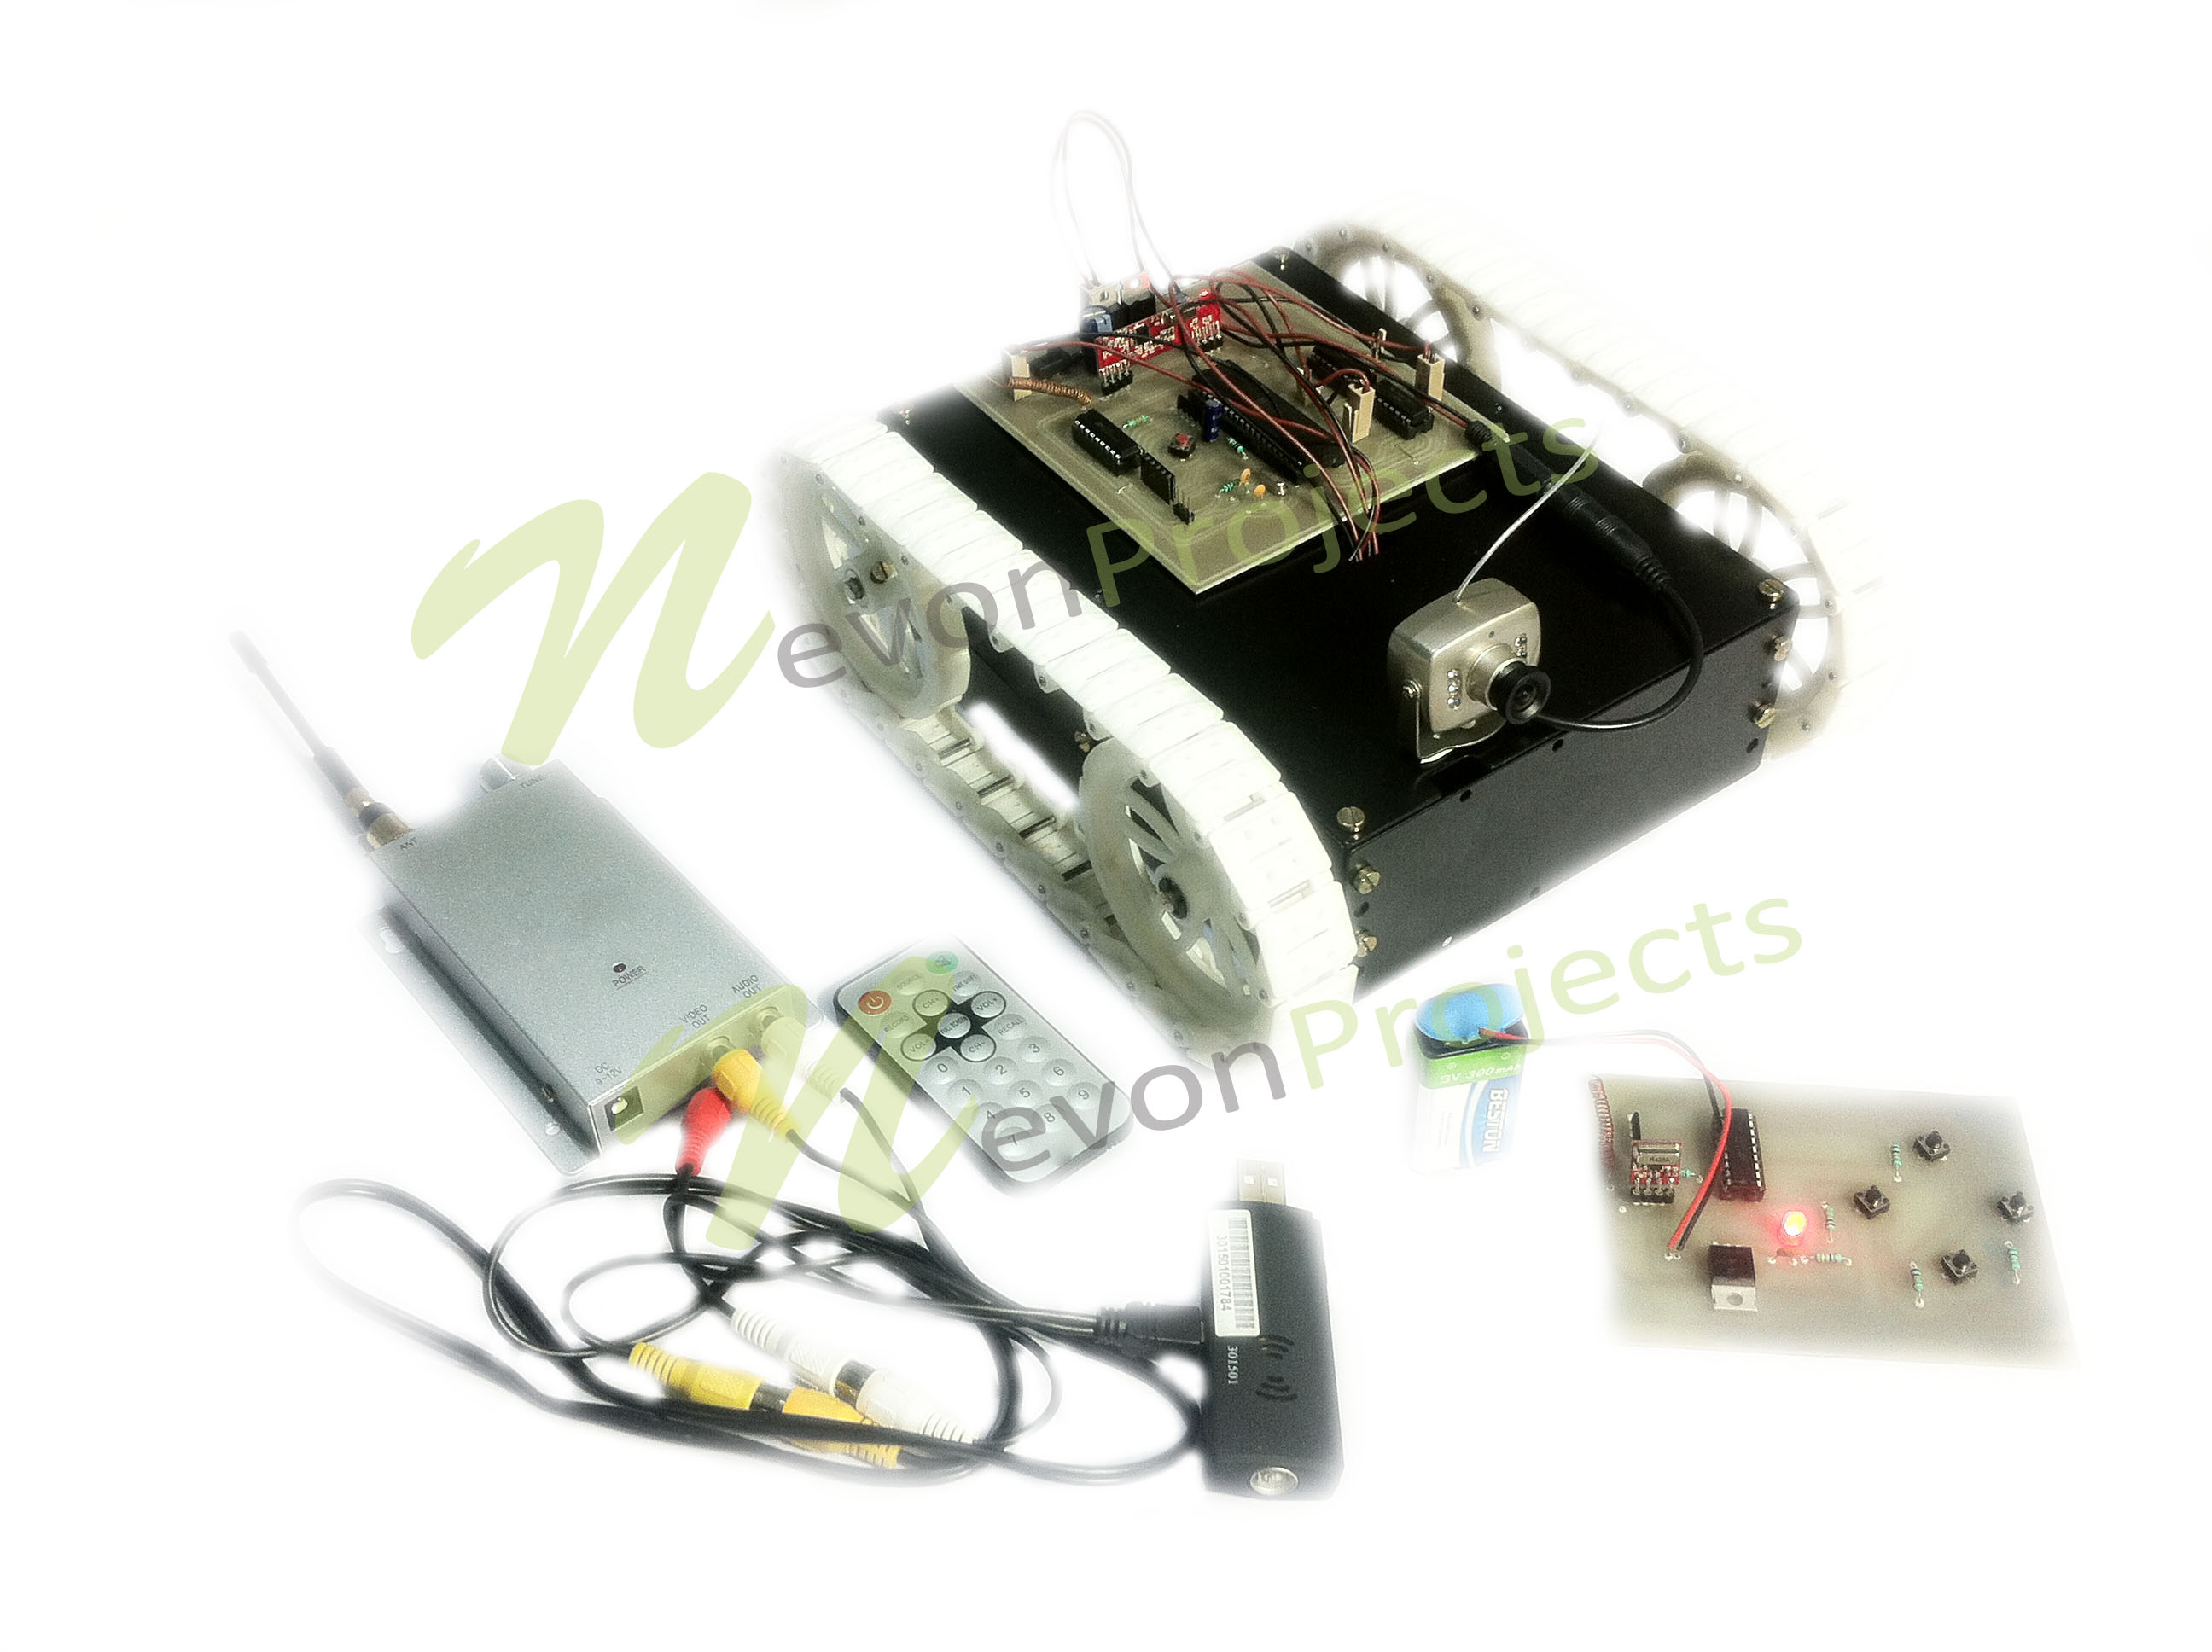 RF Based Night Vision Spy Robot Using PIC